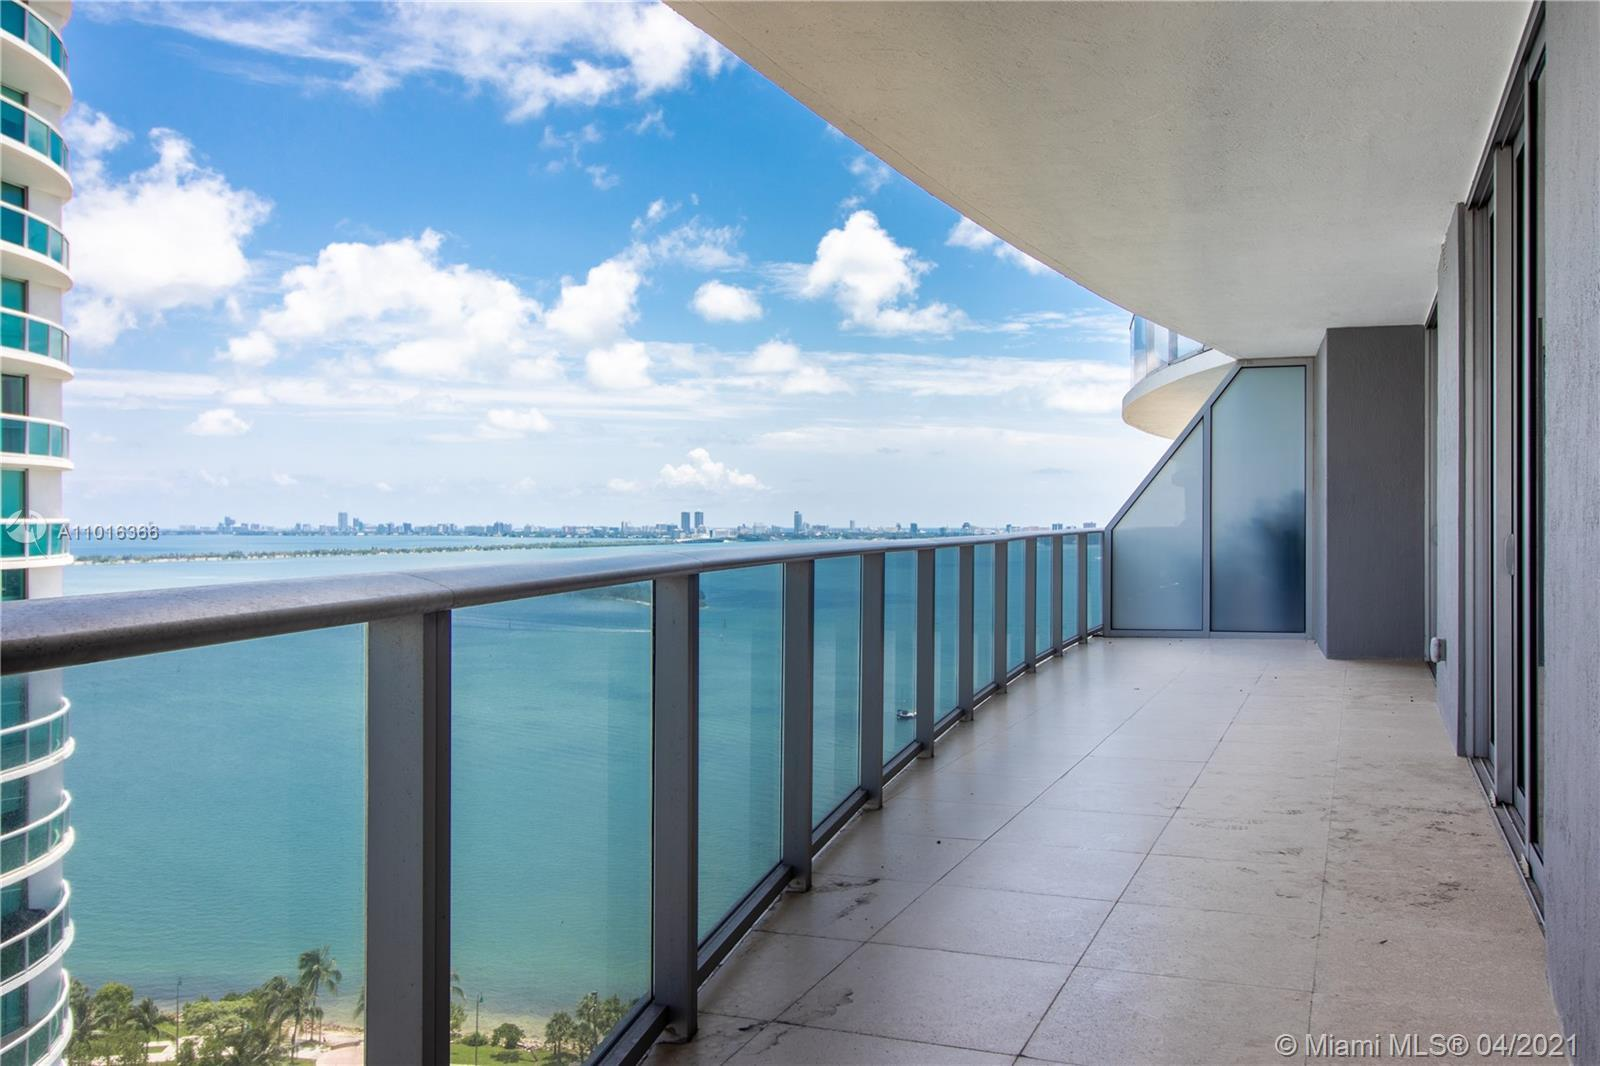 Rare 11 line, 2 bedroom + den converted to 3rd BR.  Private foyer opens to upgraded unit with floor